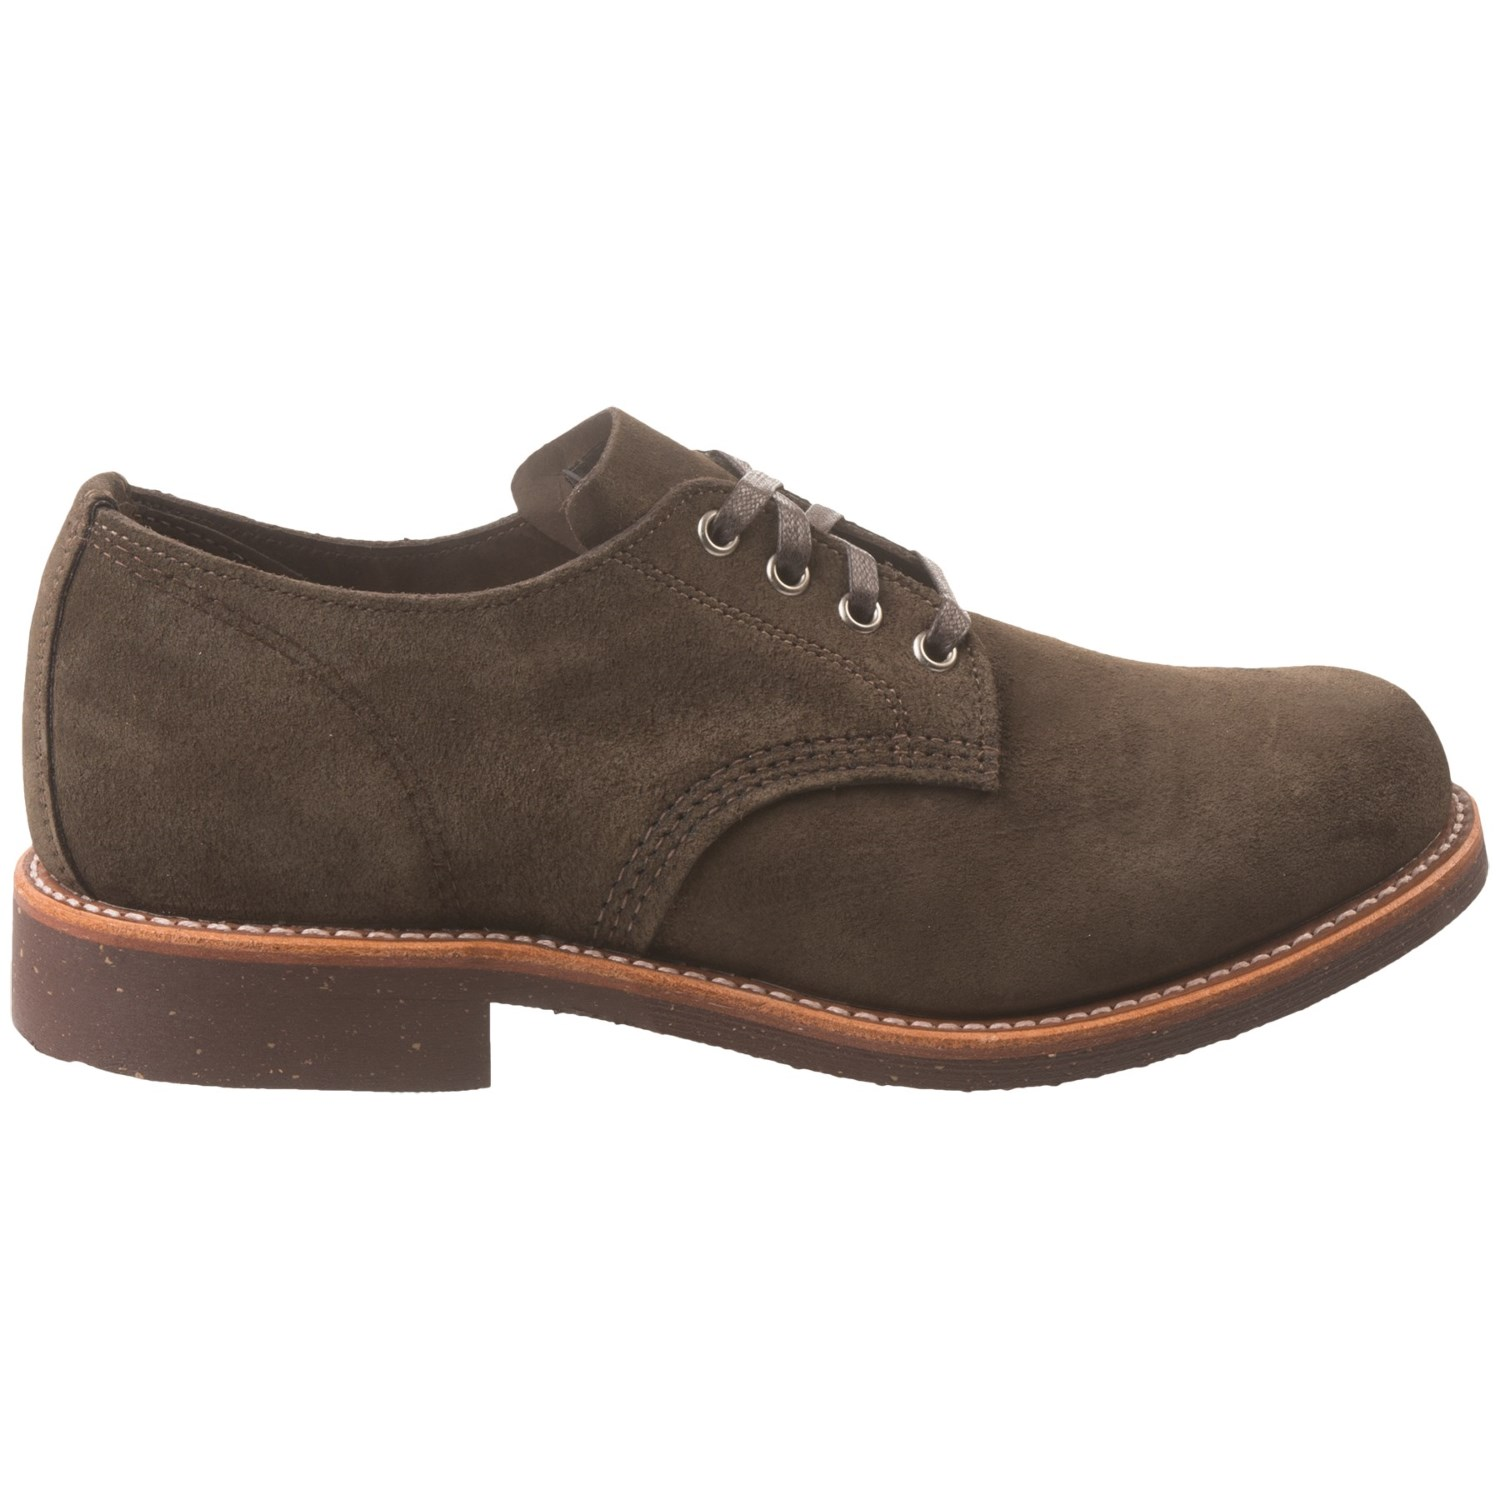 6da98796582 Chippewa General Utility Service Oxford Shoes (For Men) - Save 50%